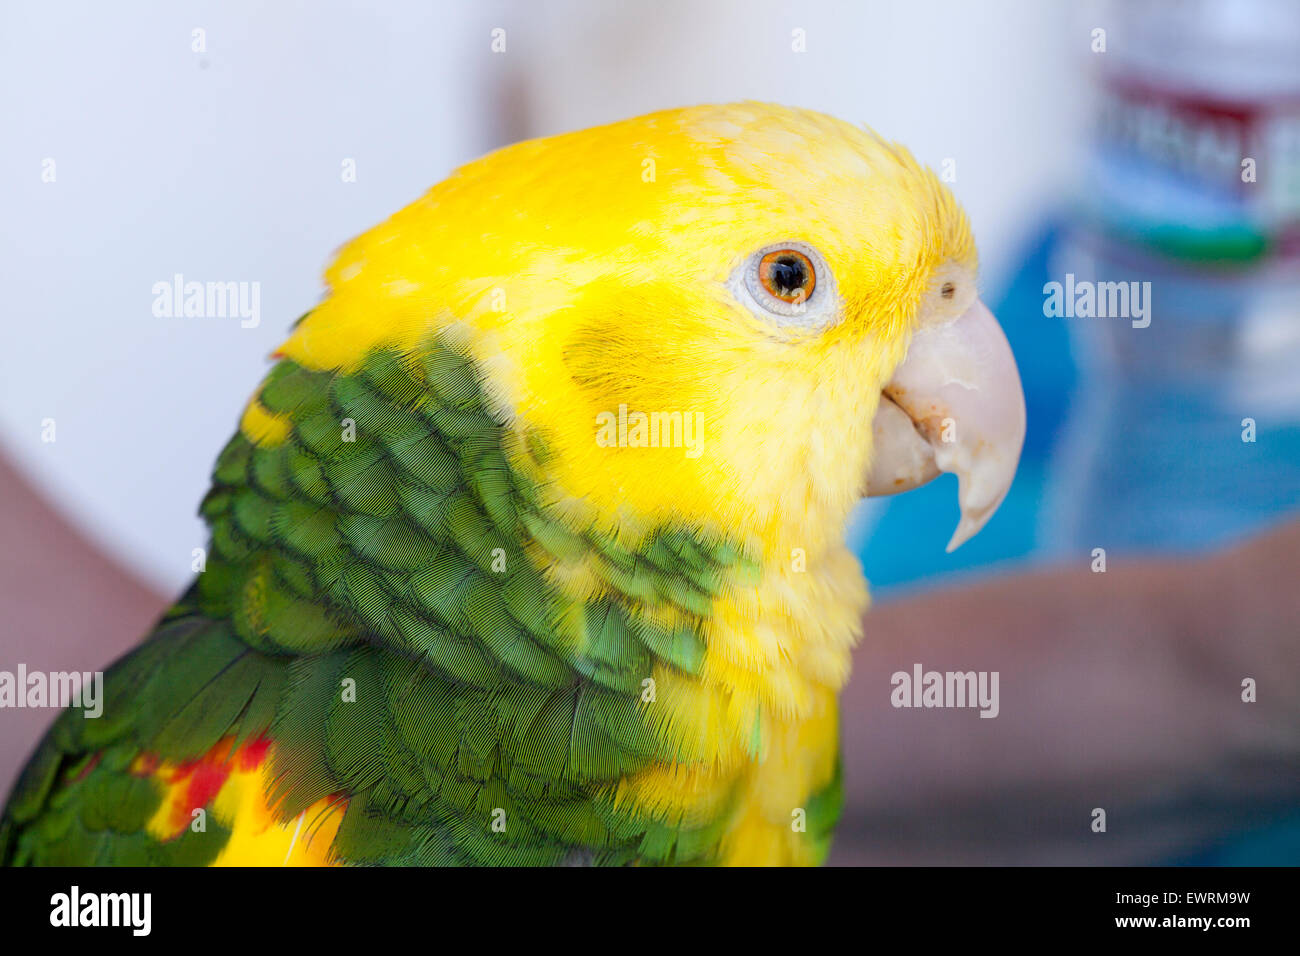 green and yellow parrots at a community bird organization in stock